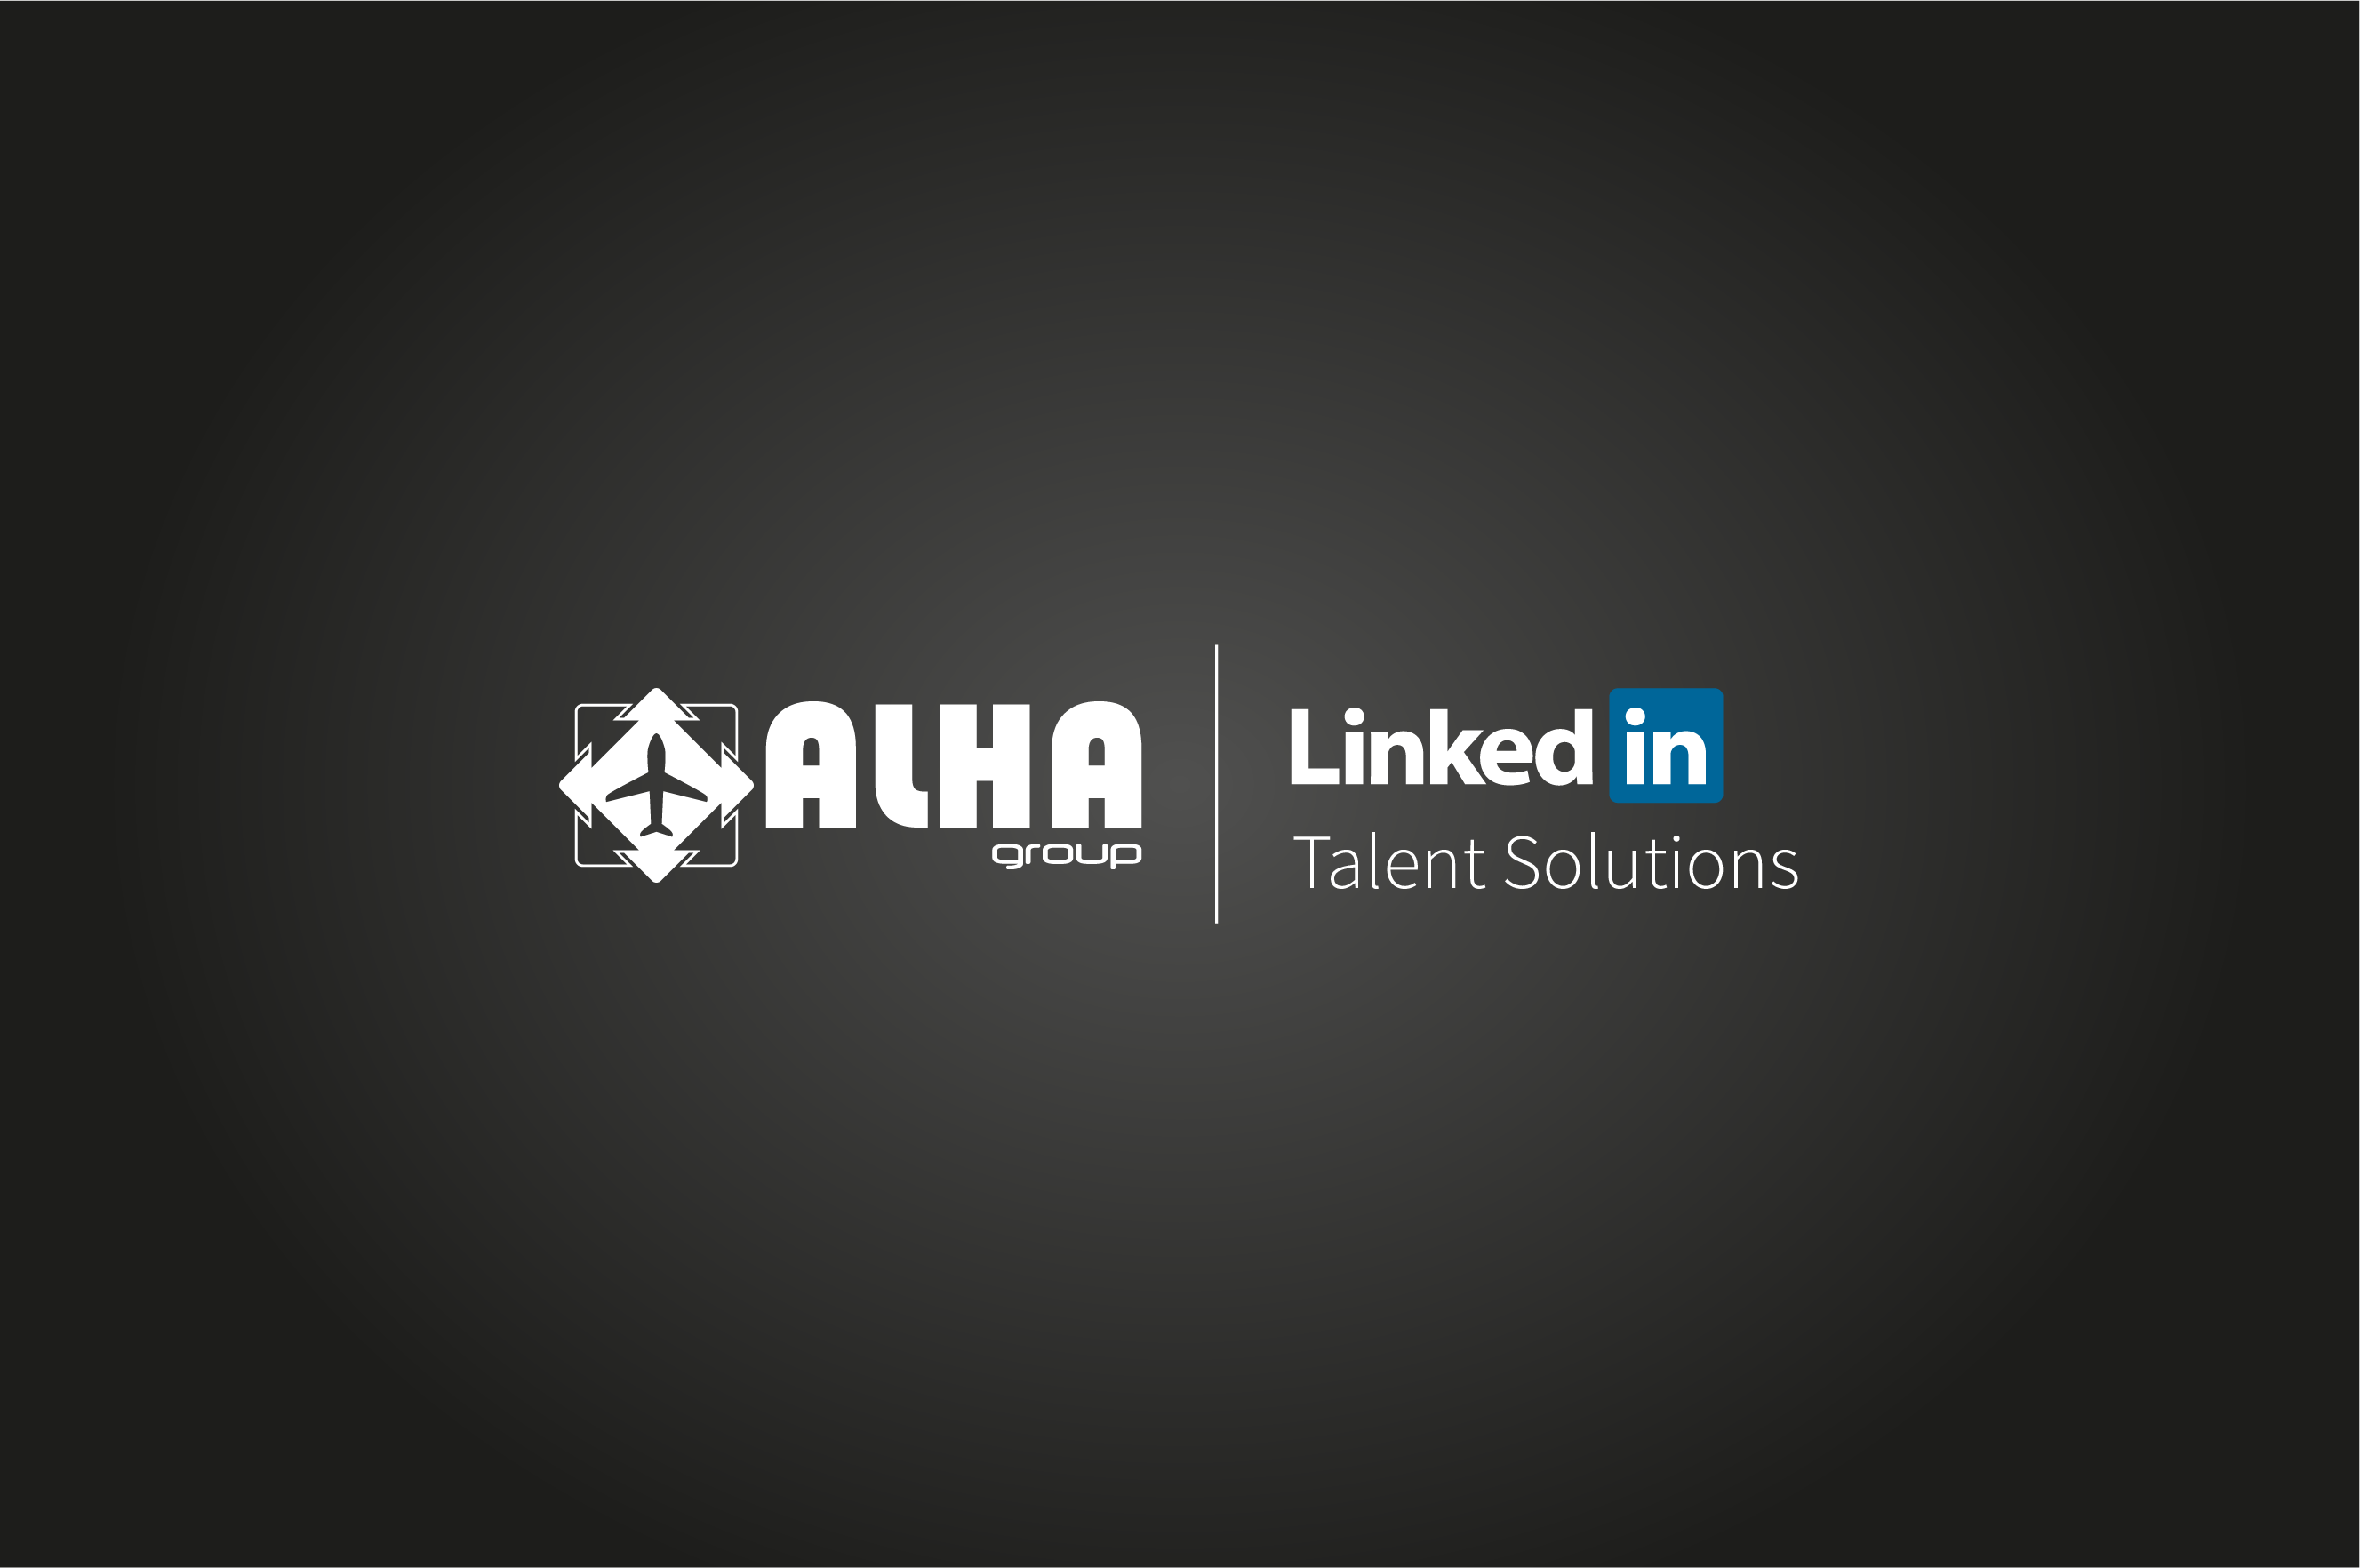 1581694665 alha linkedin talent solutions 03